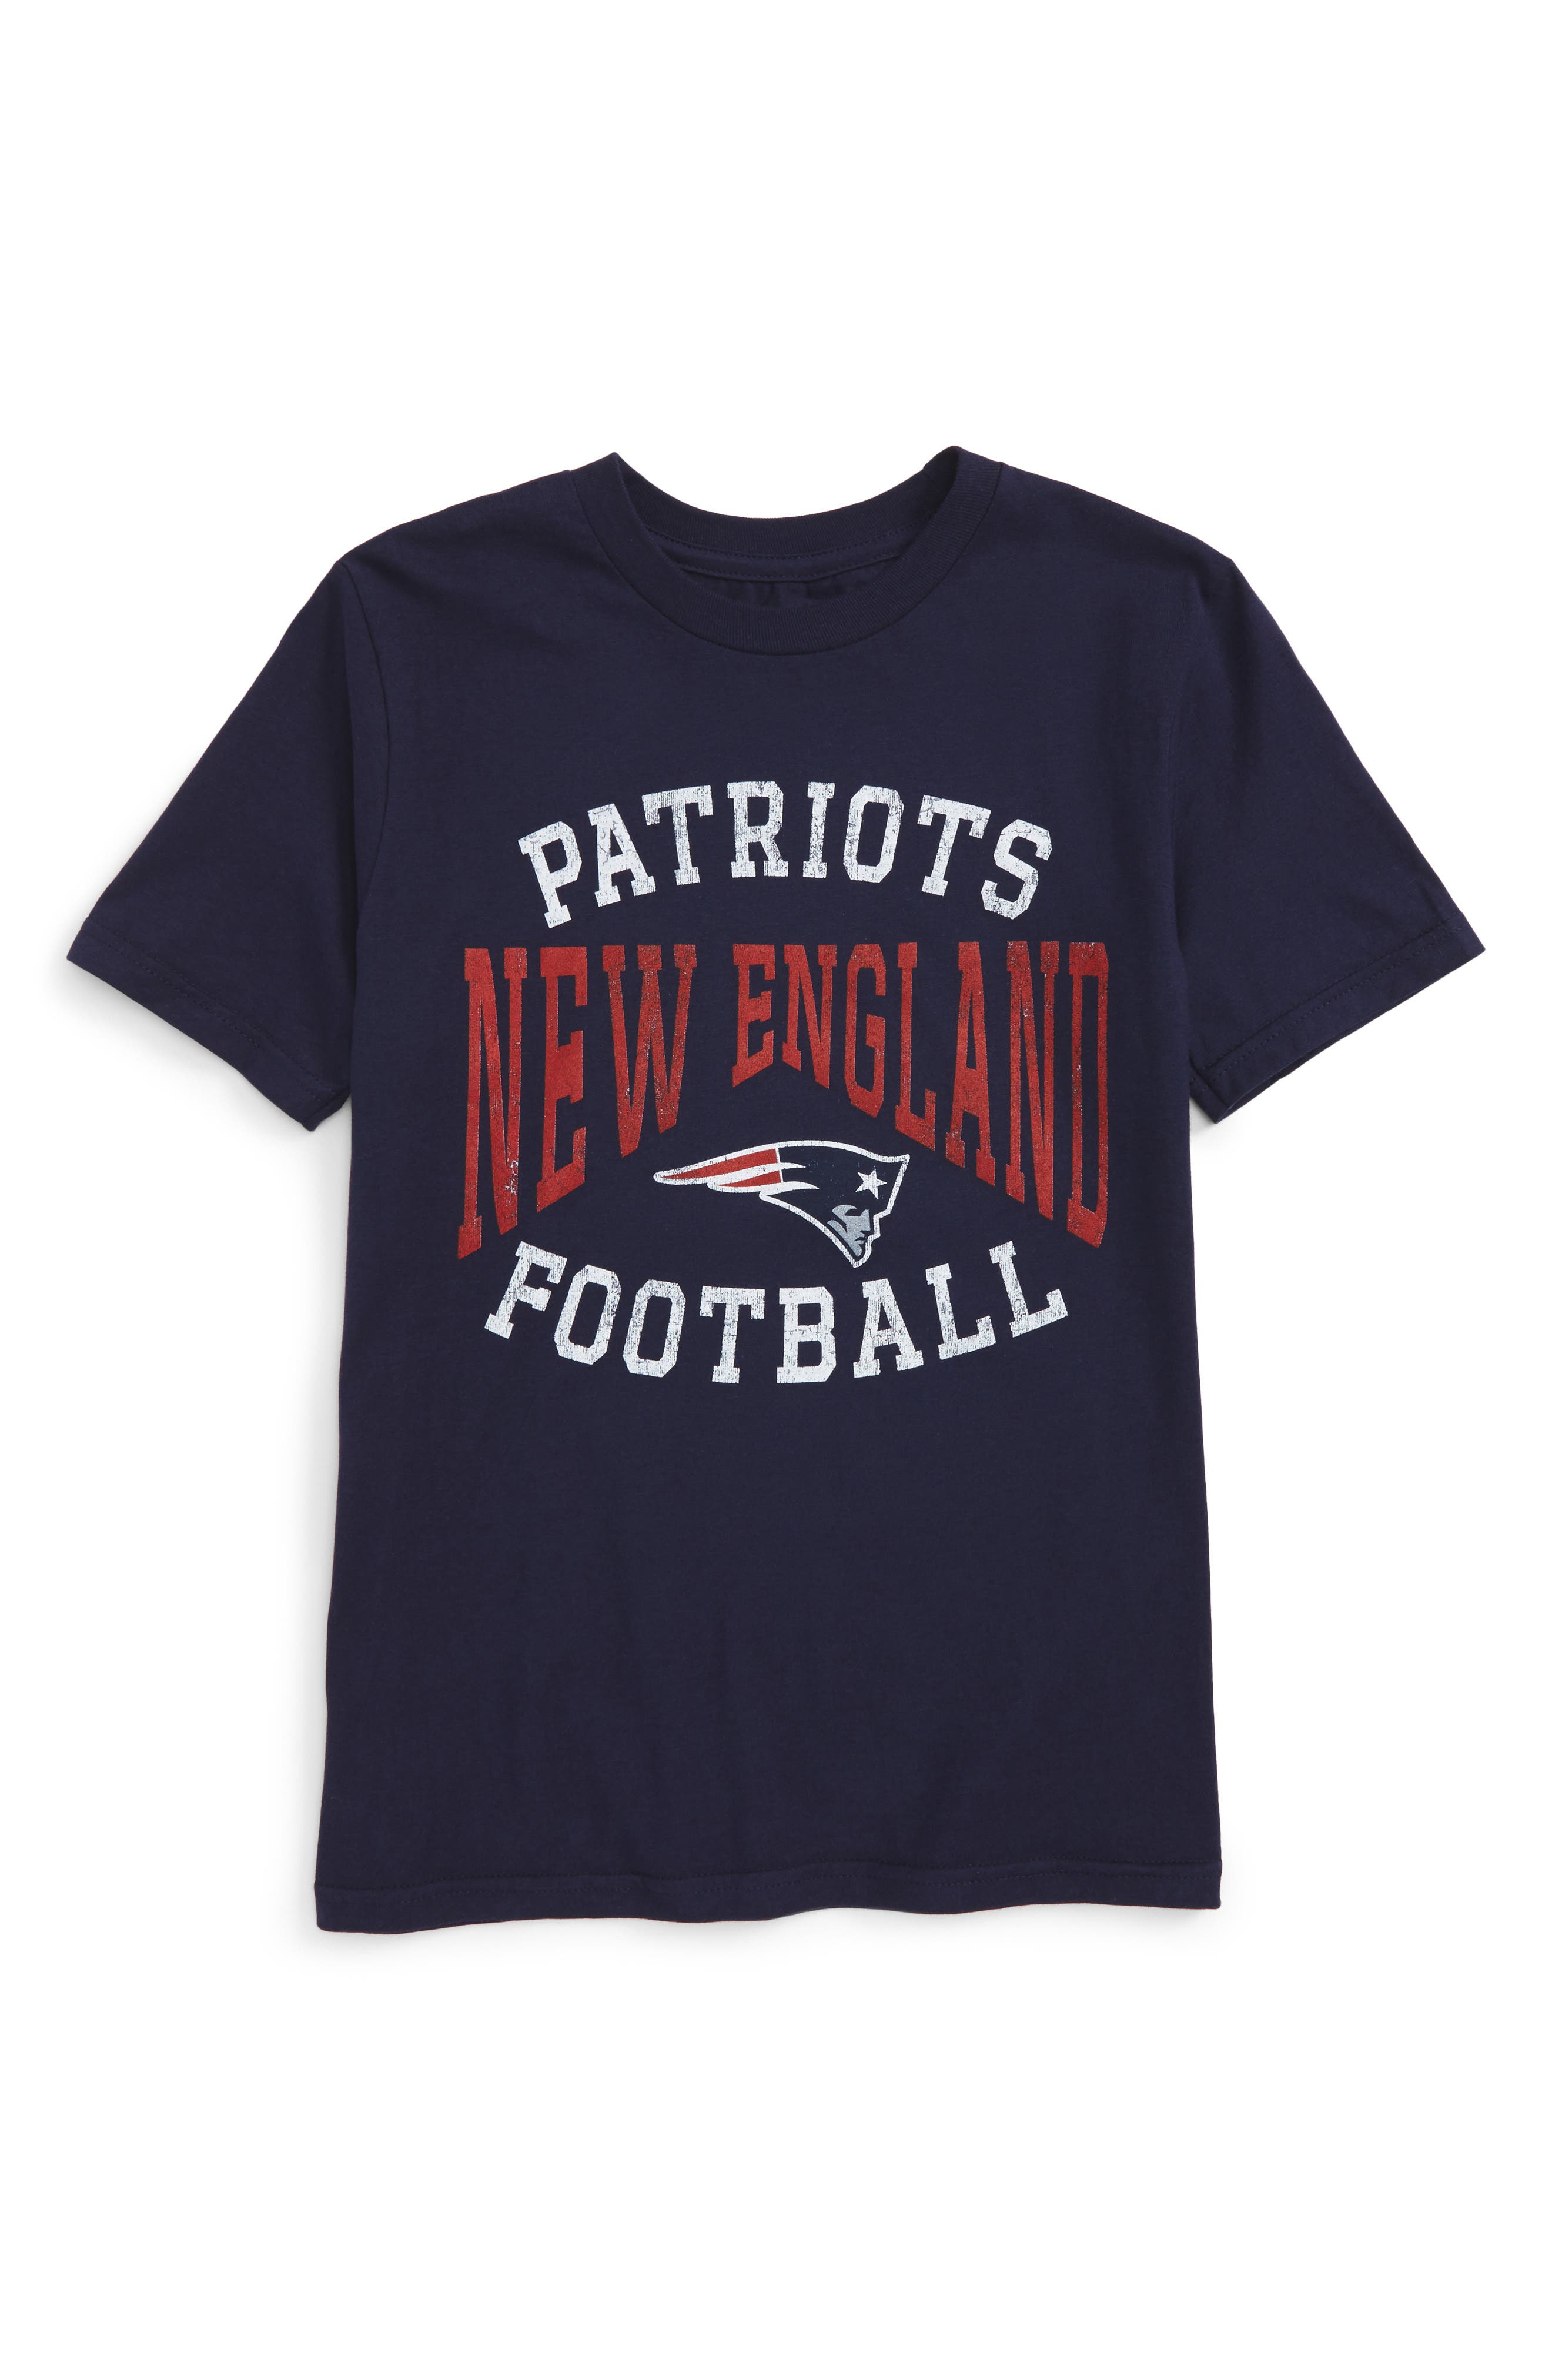 NFL New England Patriots Greatness Graphic T-Shirt,                             Main thumbnail 1, color,                             Navy